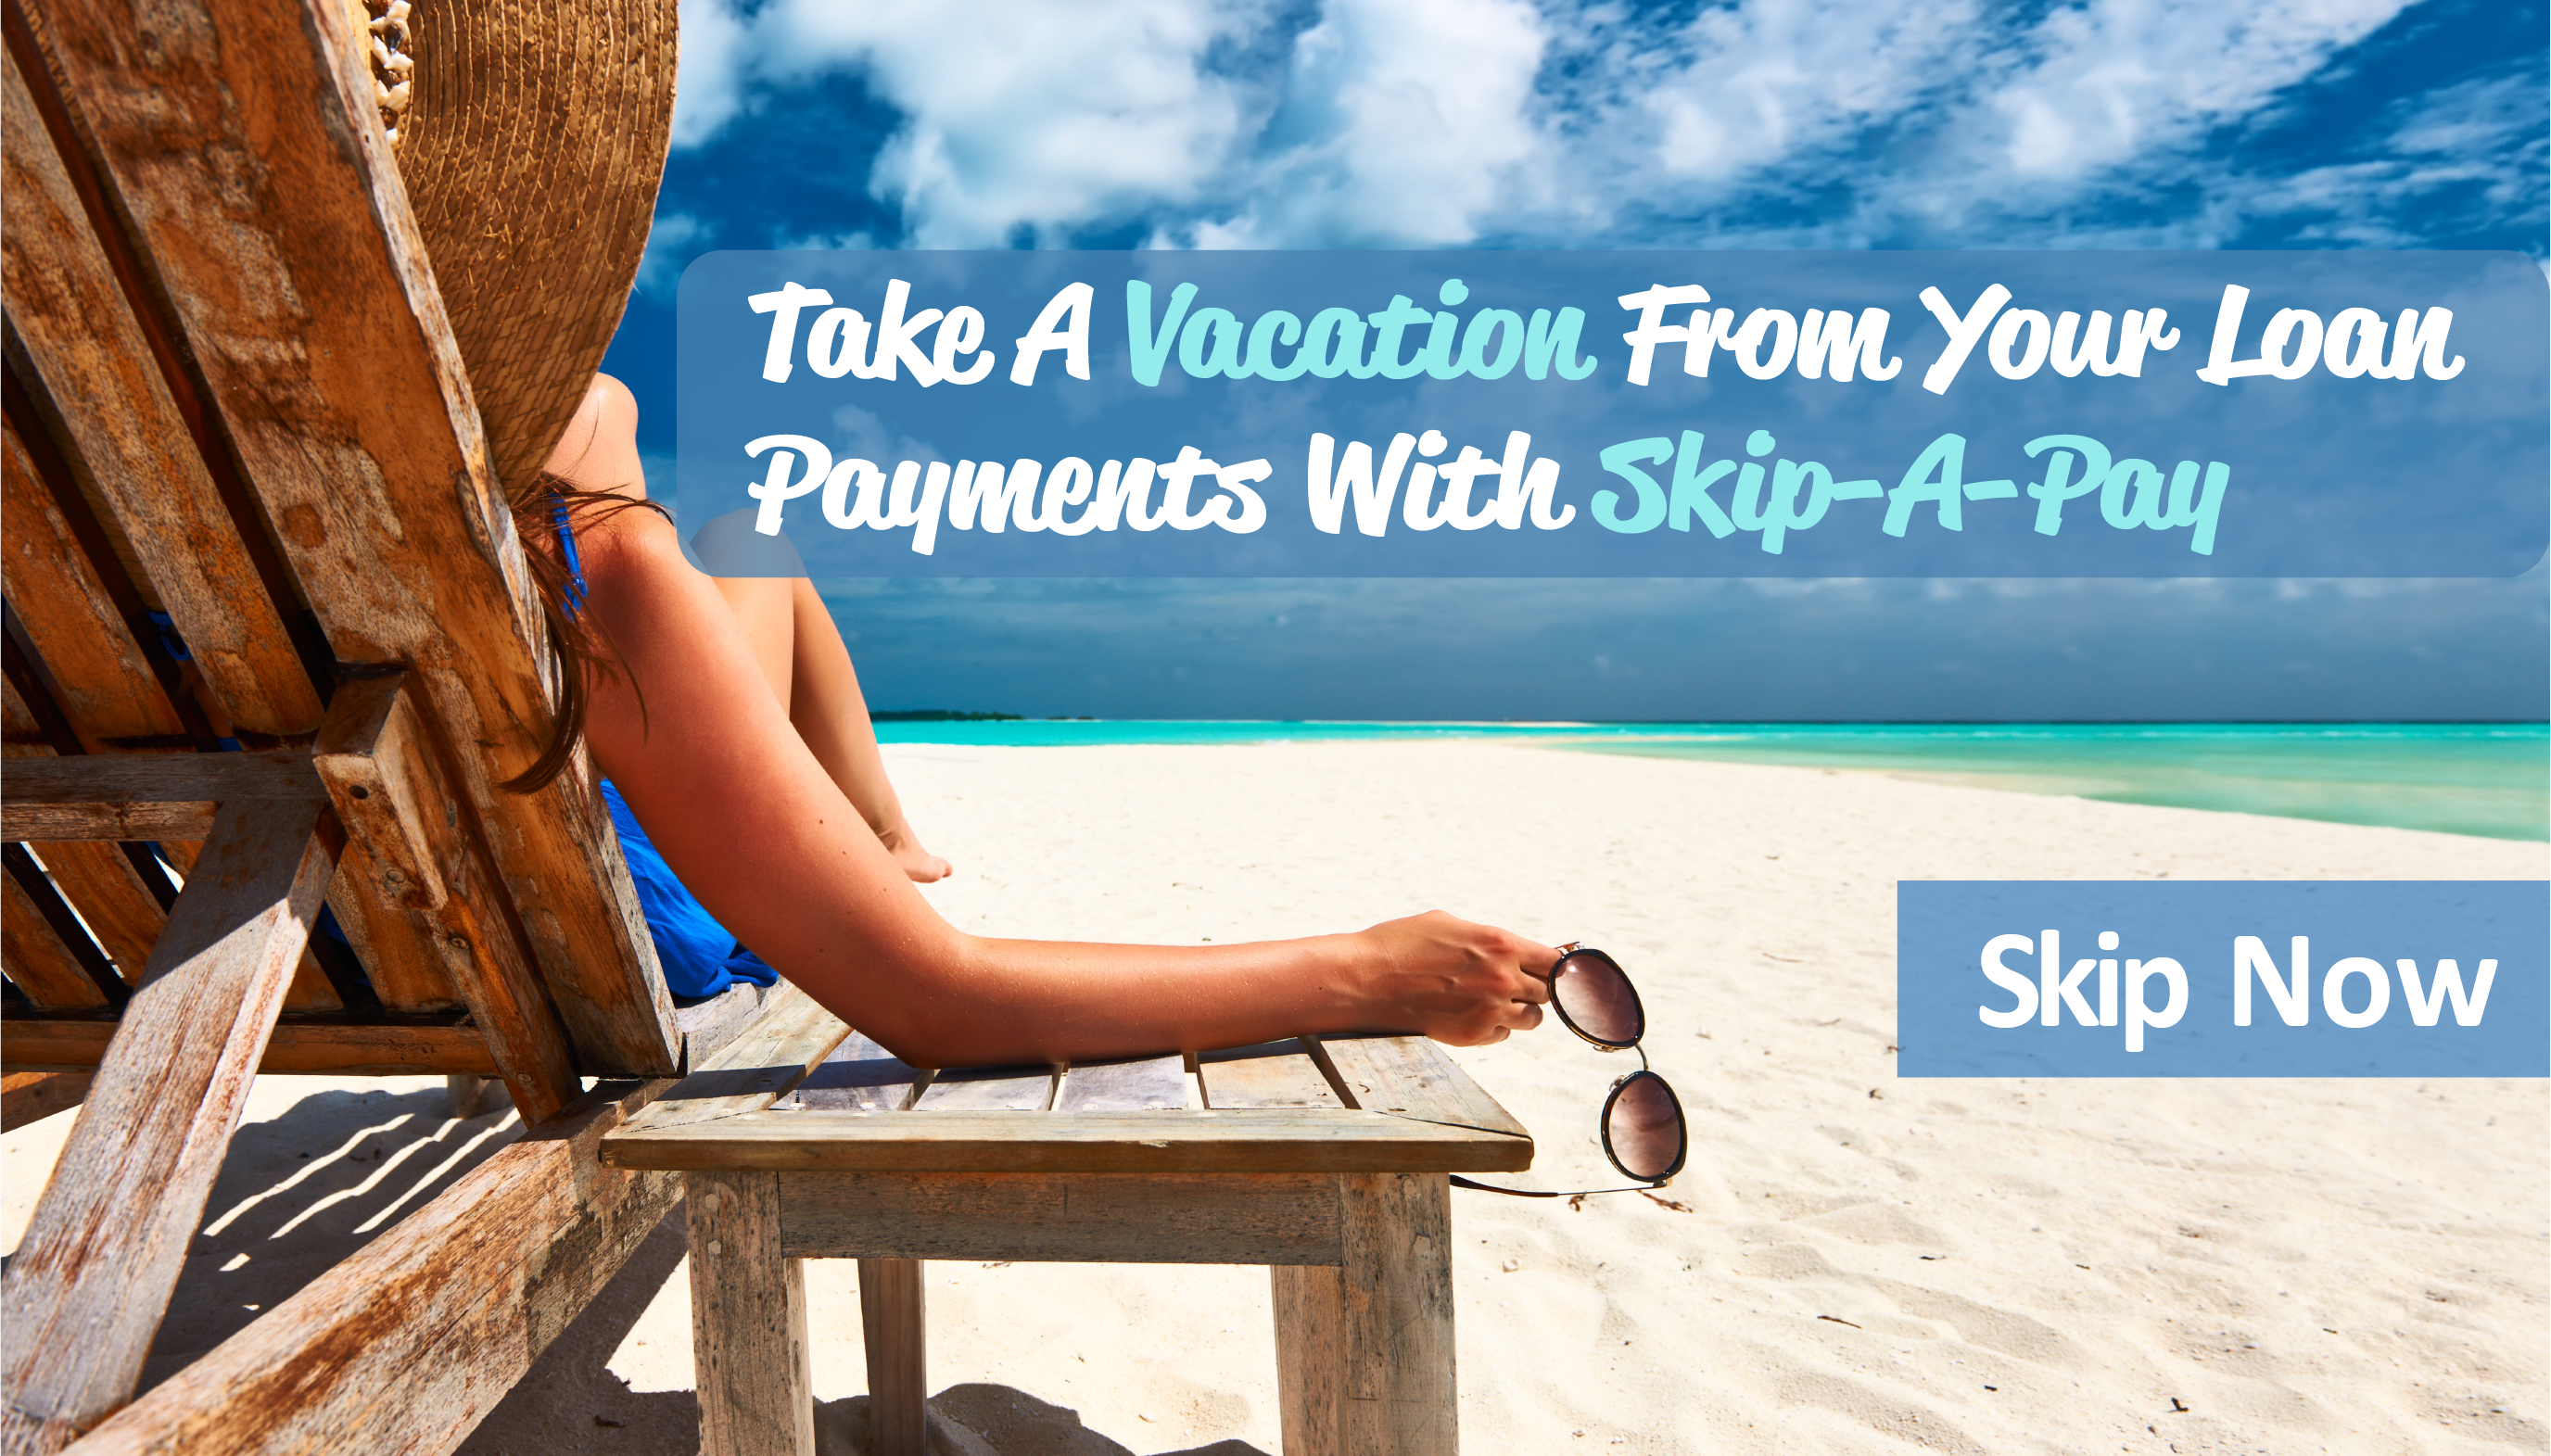 Take a Vacation from your payments with Skip-A-Pay!